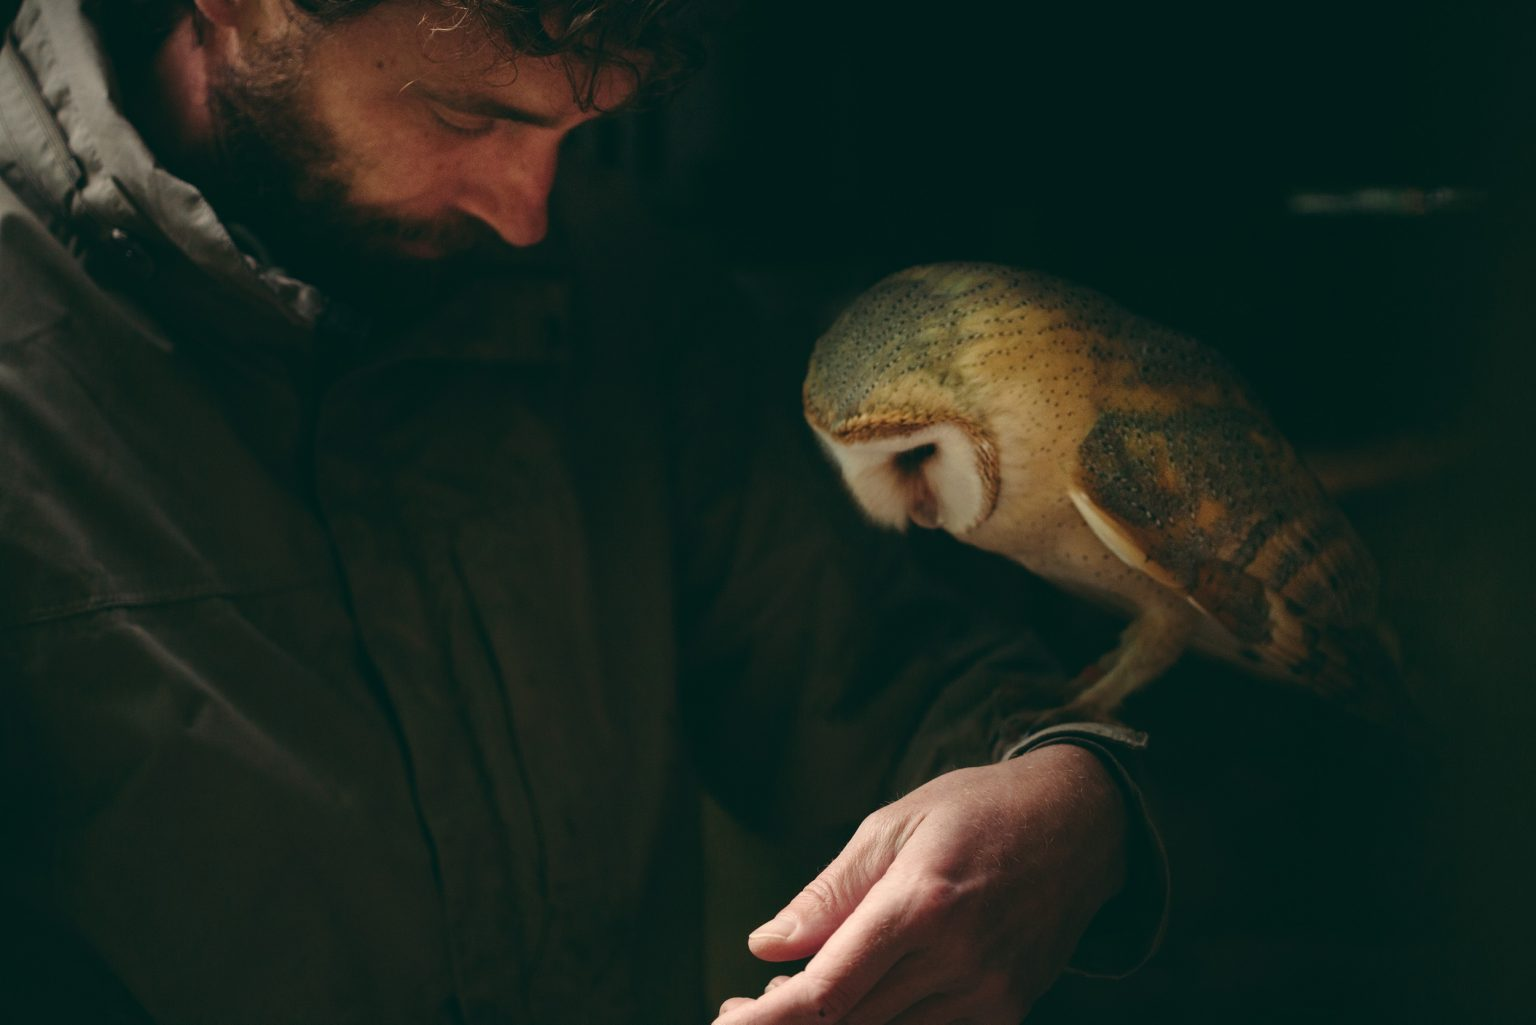 Bonneuil-Matours, France, May 2017 - La Maison Neuve. In the morning, after the daily weighing ritual, Tristan and the barn owl Boubo take time to be together. >< Bonneuil-Matours, Francia, maggio 2017 - Al mattino, dopo il rituale della pesata quotidiana, Tristan e il barbagianni Boubo si prendono del tempo per stare insieme.*** SPECIAL   FEE   APPLIES *** *** Local Caption *** 01489308